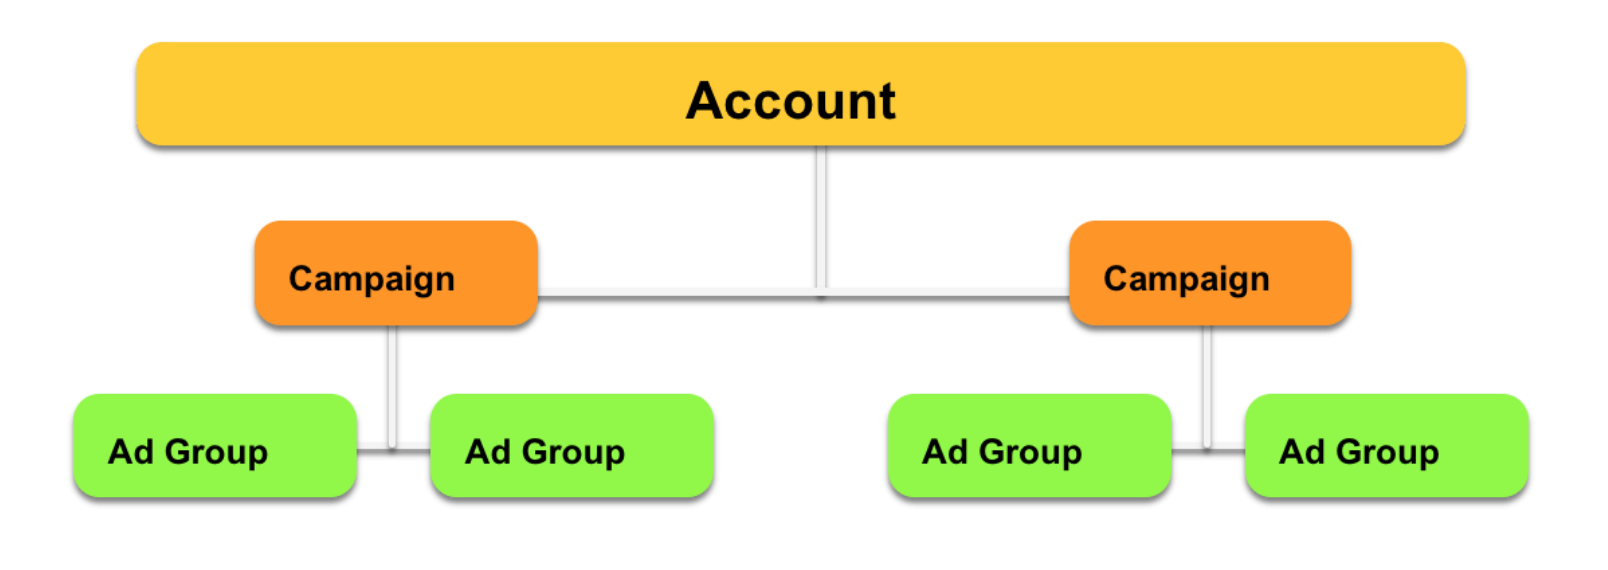 Ad Groups Diagram